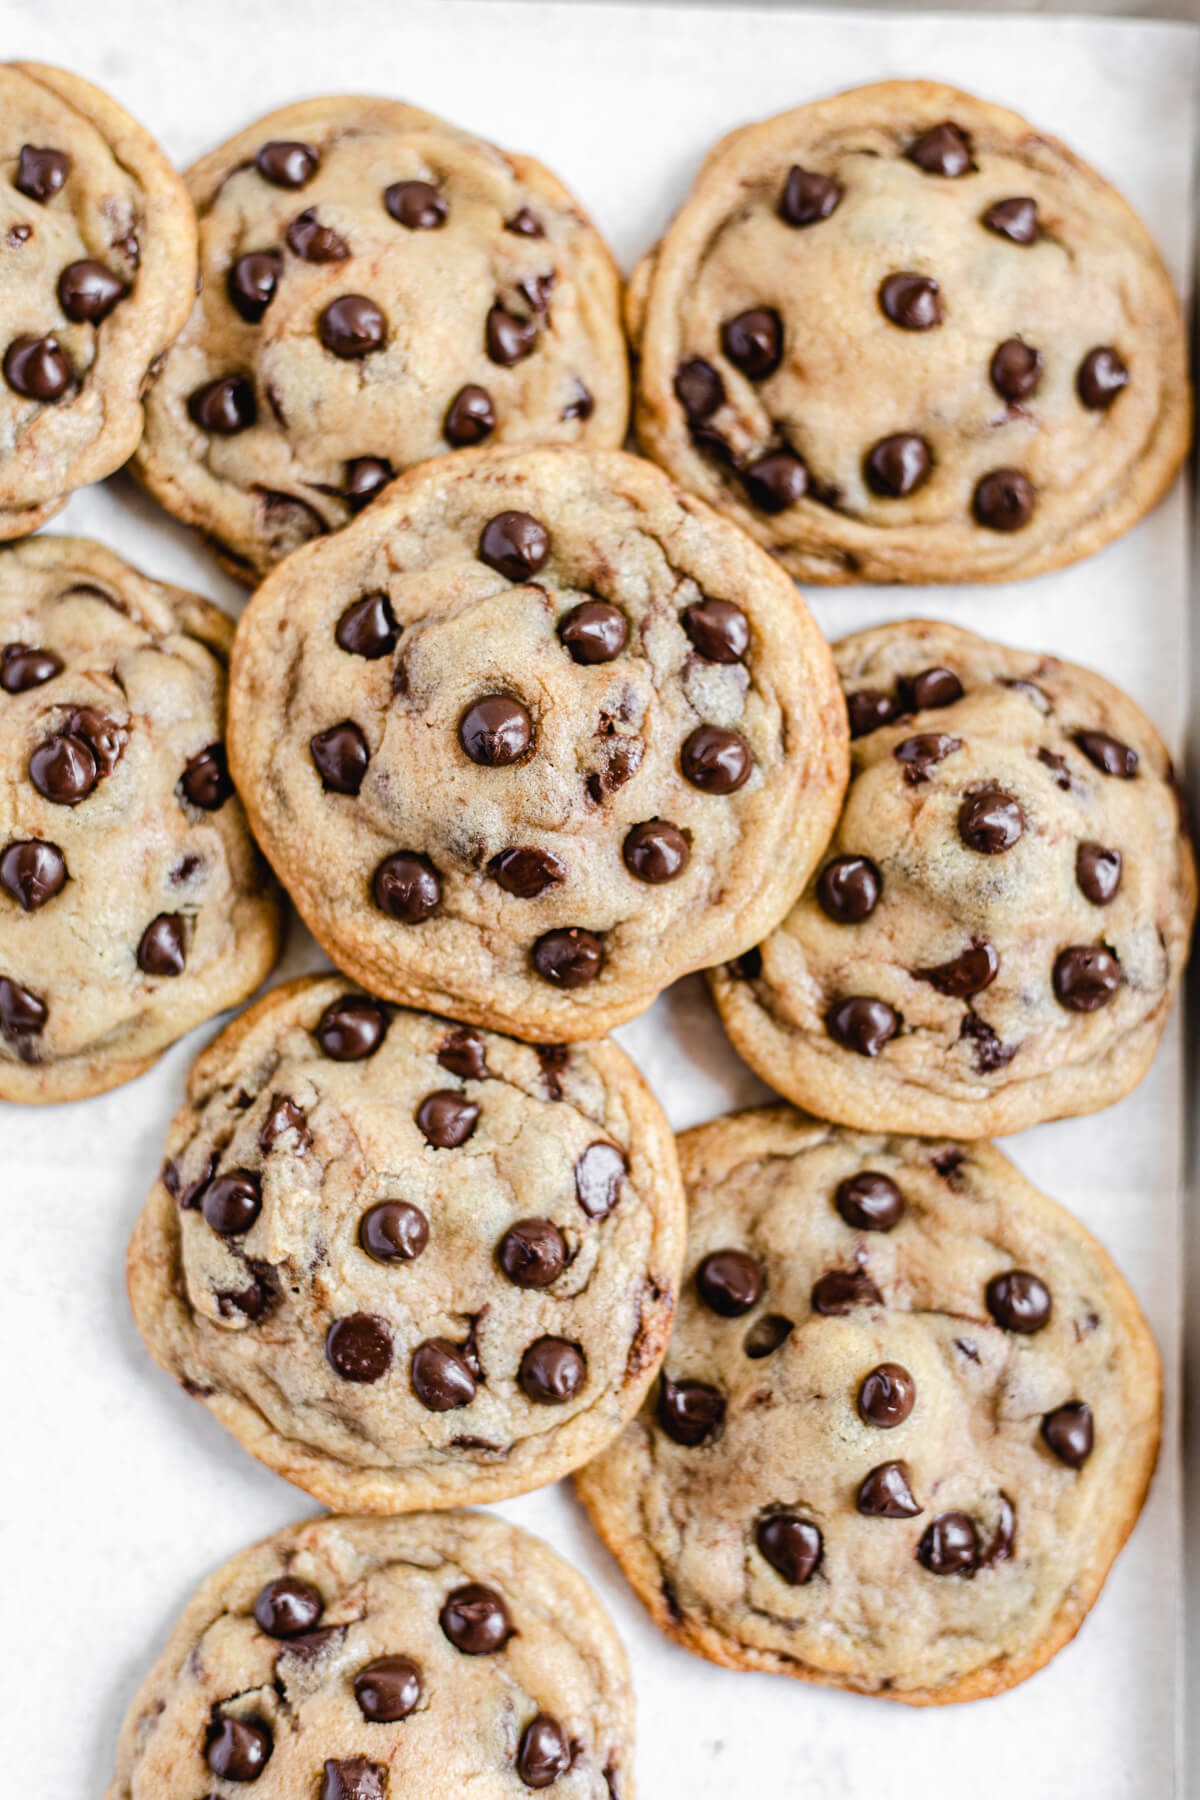 cookies piled together on a baking sheet